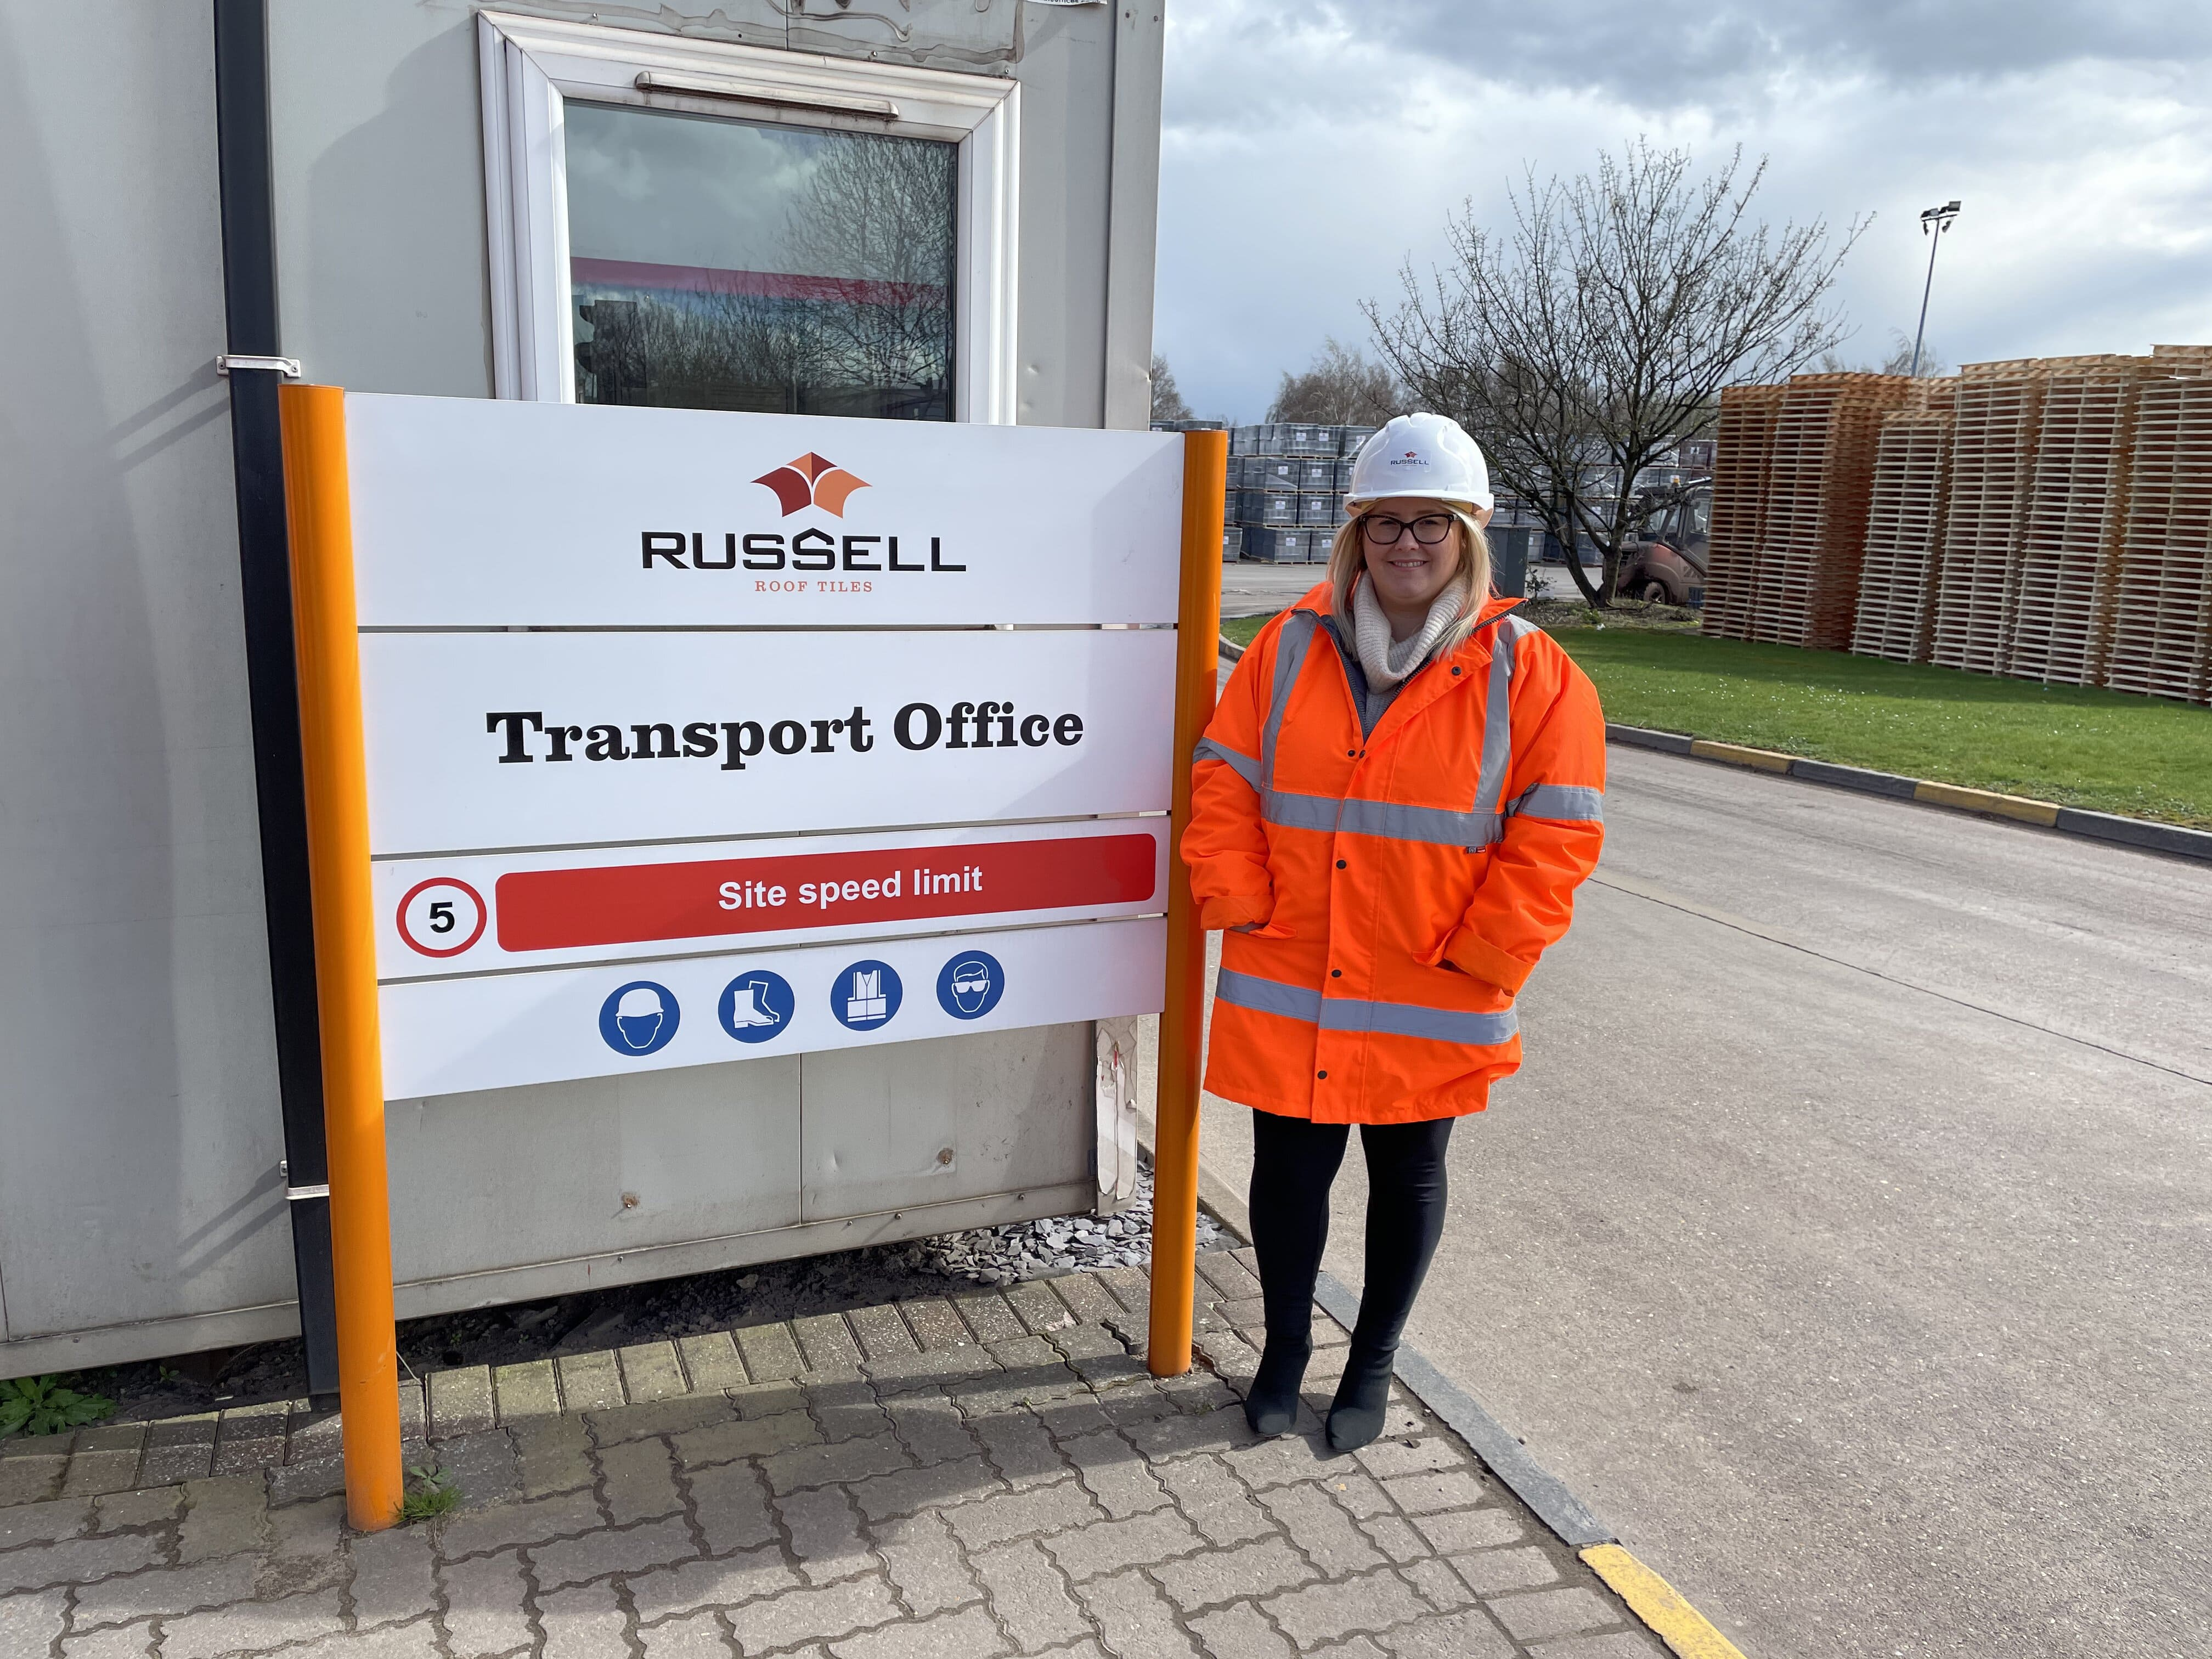 NEW LOGISTICS MANAGER AT ROOF TILE FIRM TO MEET GROWING DEMAND